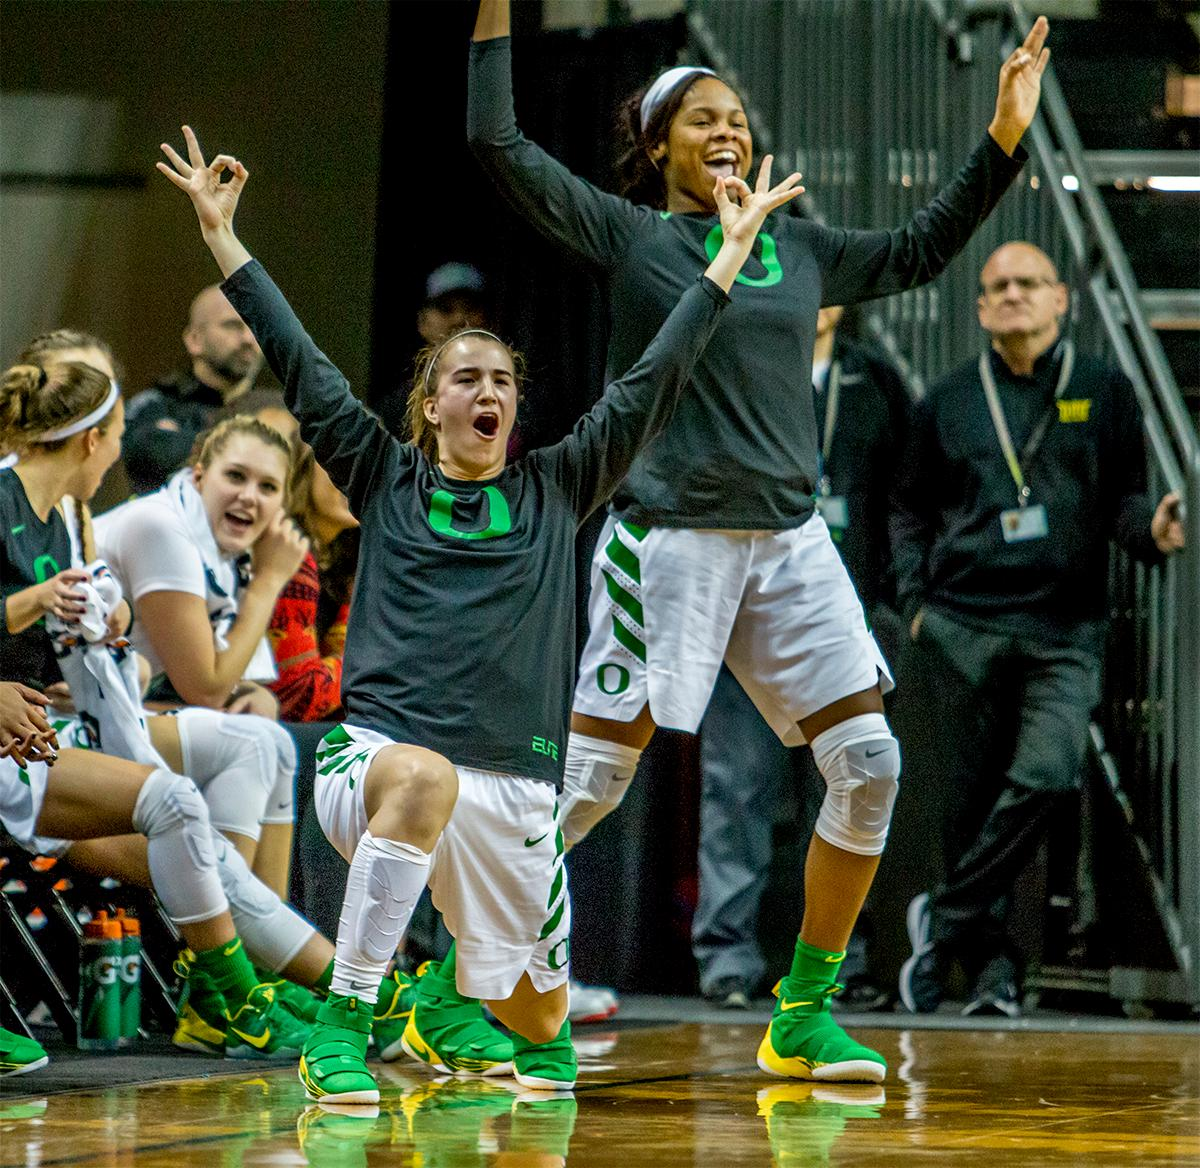 Ducks on the bench celebrate their team scoring a three pointer. The University of Oregon Ducks women basketball team defeated the Southern Utah Thunderbirds 98-38 in Matthew Knight Arena Saturday afternoon. The Ducks had four players in double-digits: Ruthy Hebard with 13; Mallory McGwire with 10; Lexi Bando with 17 which included four three-pointers; and Sabrina Ionescu with 16 points. The Ducks overwhelmed the Thunderbirds, shooting 50% in field goals to South Utah's 26.8%, 53.8% in three-pointers to 12.5%, and 85.7% in free throws to 50%. The Ducks, with an overall record of 8-1, and coming into this game ranked 9th, will play their next home game against Ole Miss on December 17. Photo by August Frank, Oregon News Lab